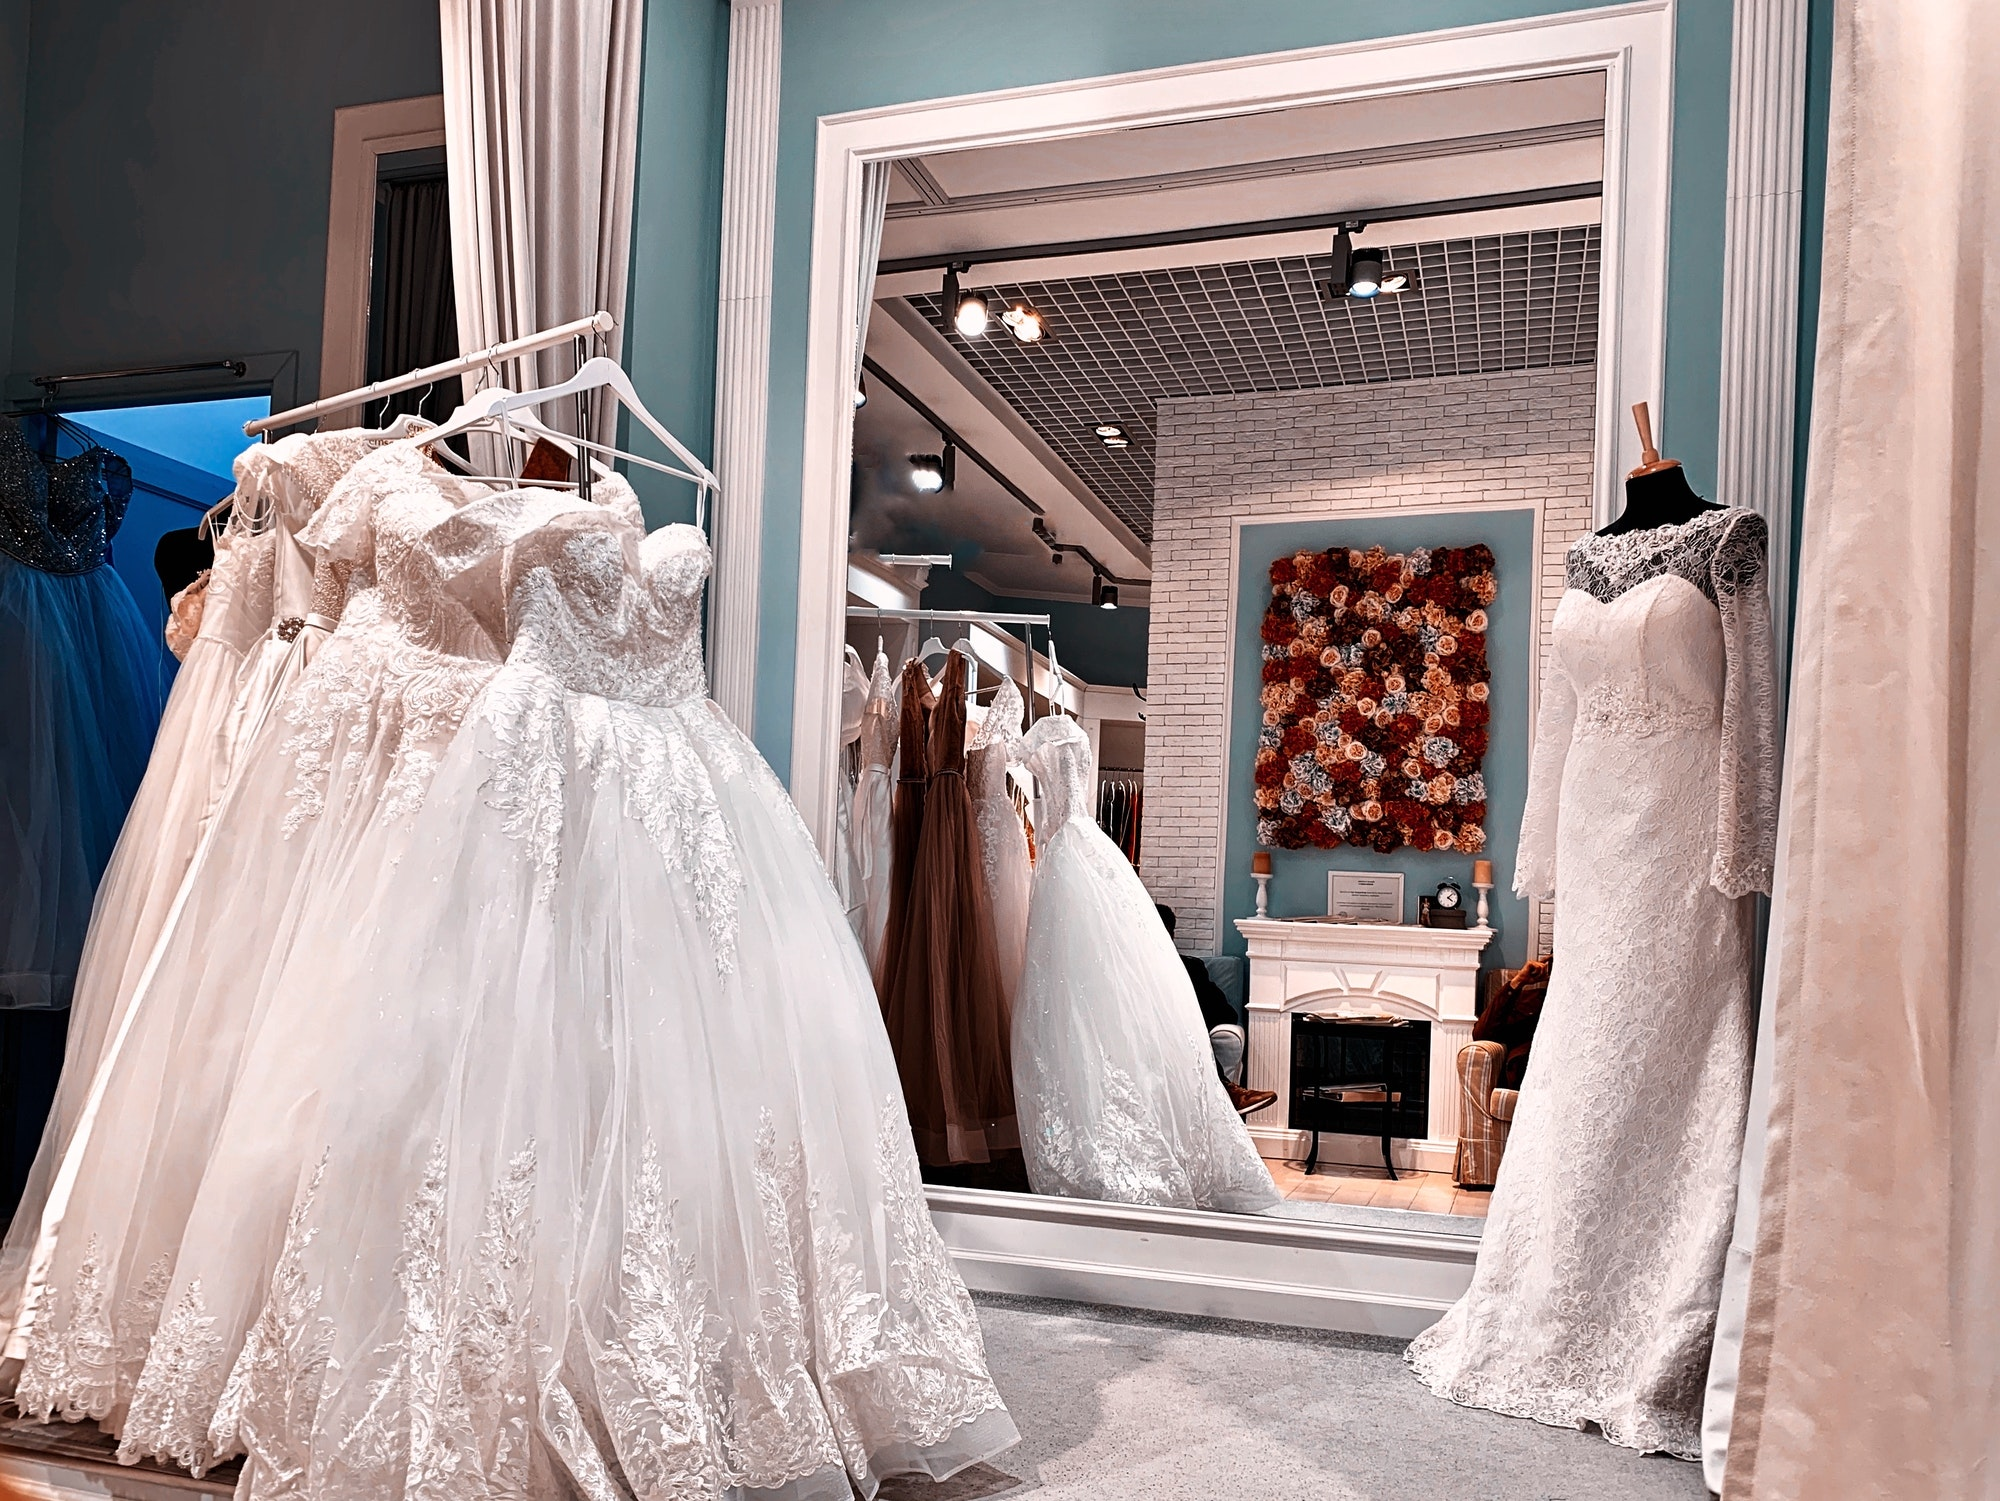 selection of wedding dresses, boutique with dresses